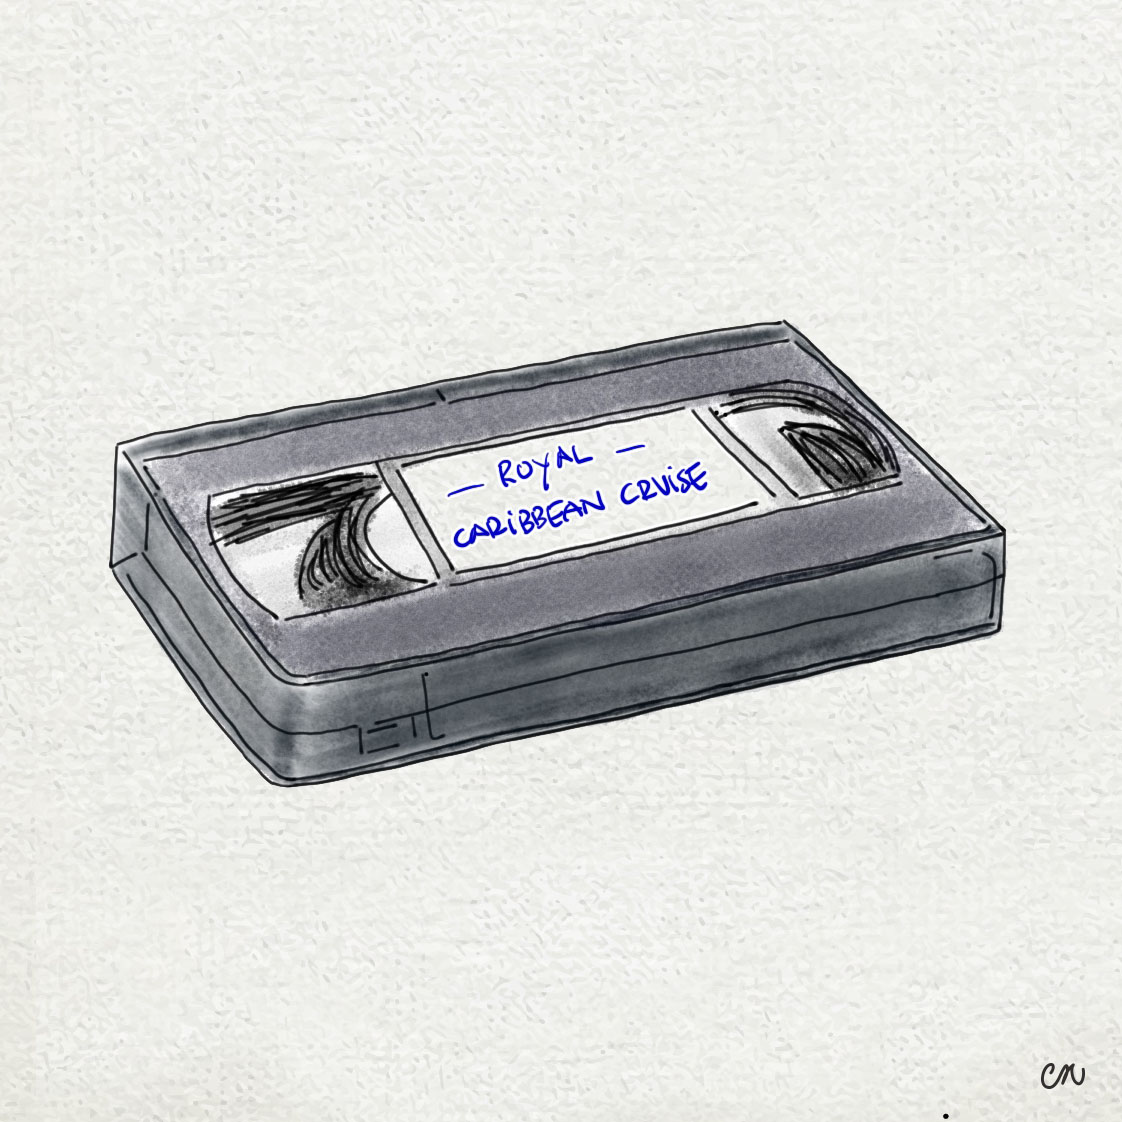 vhs tape unsolved sisteries-final.jpg